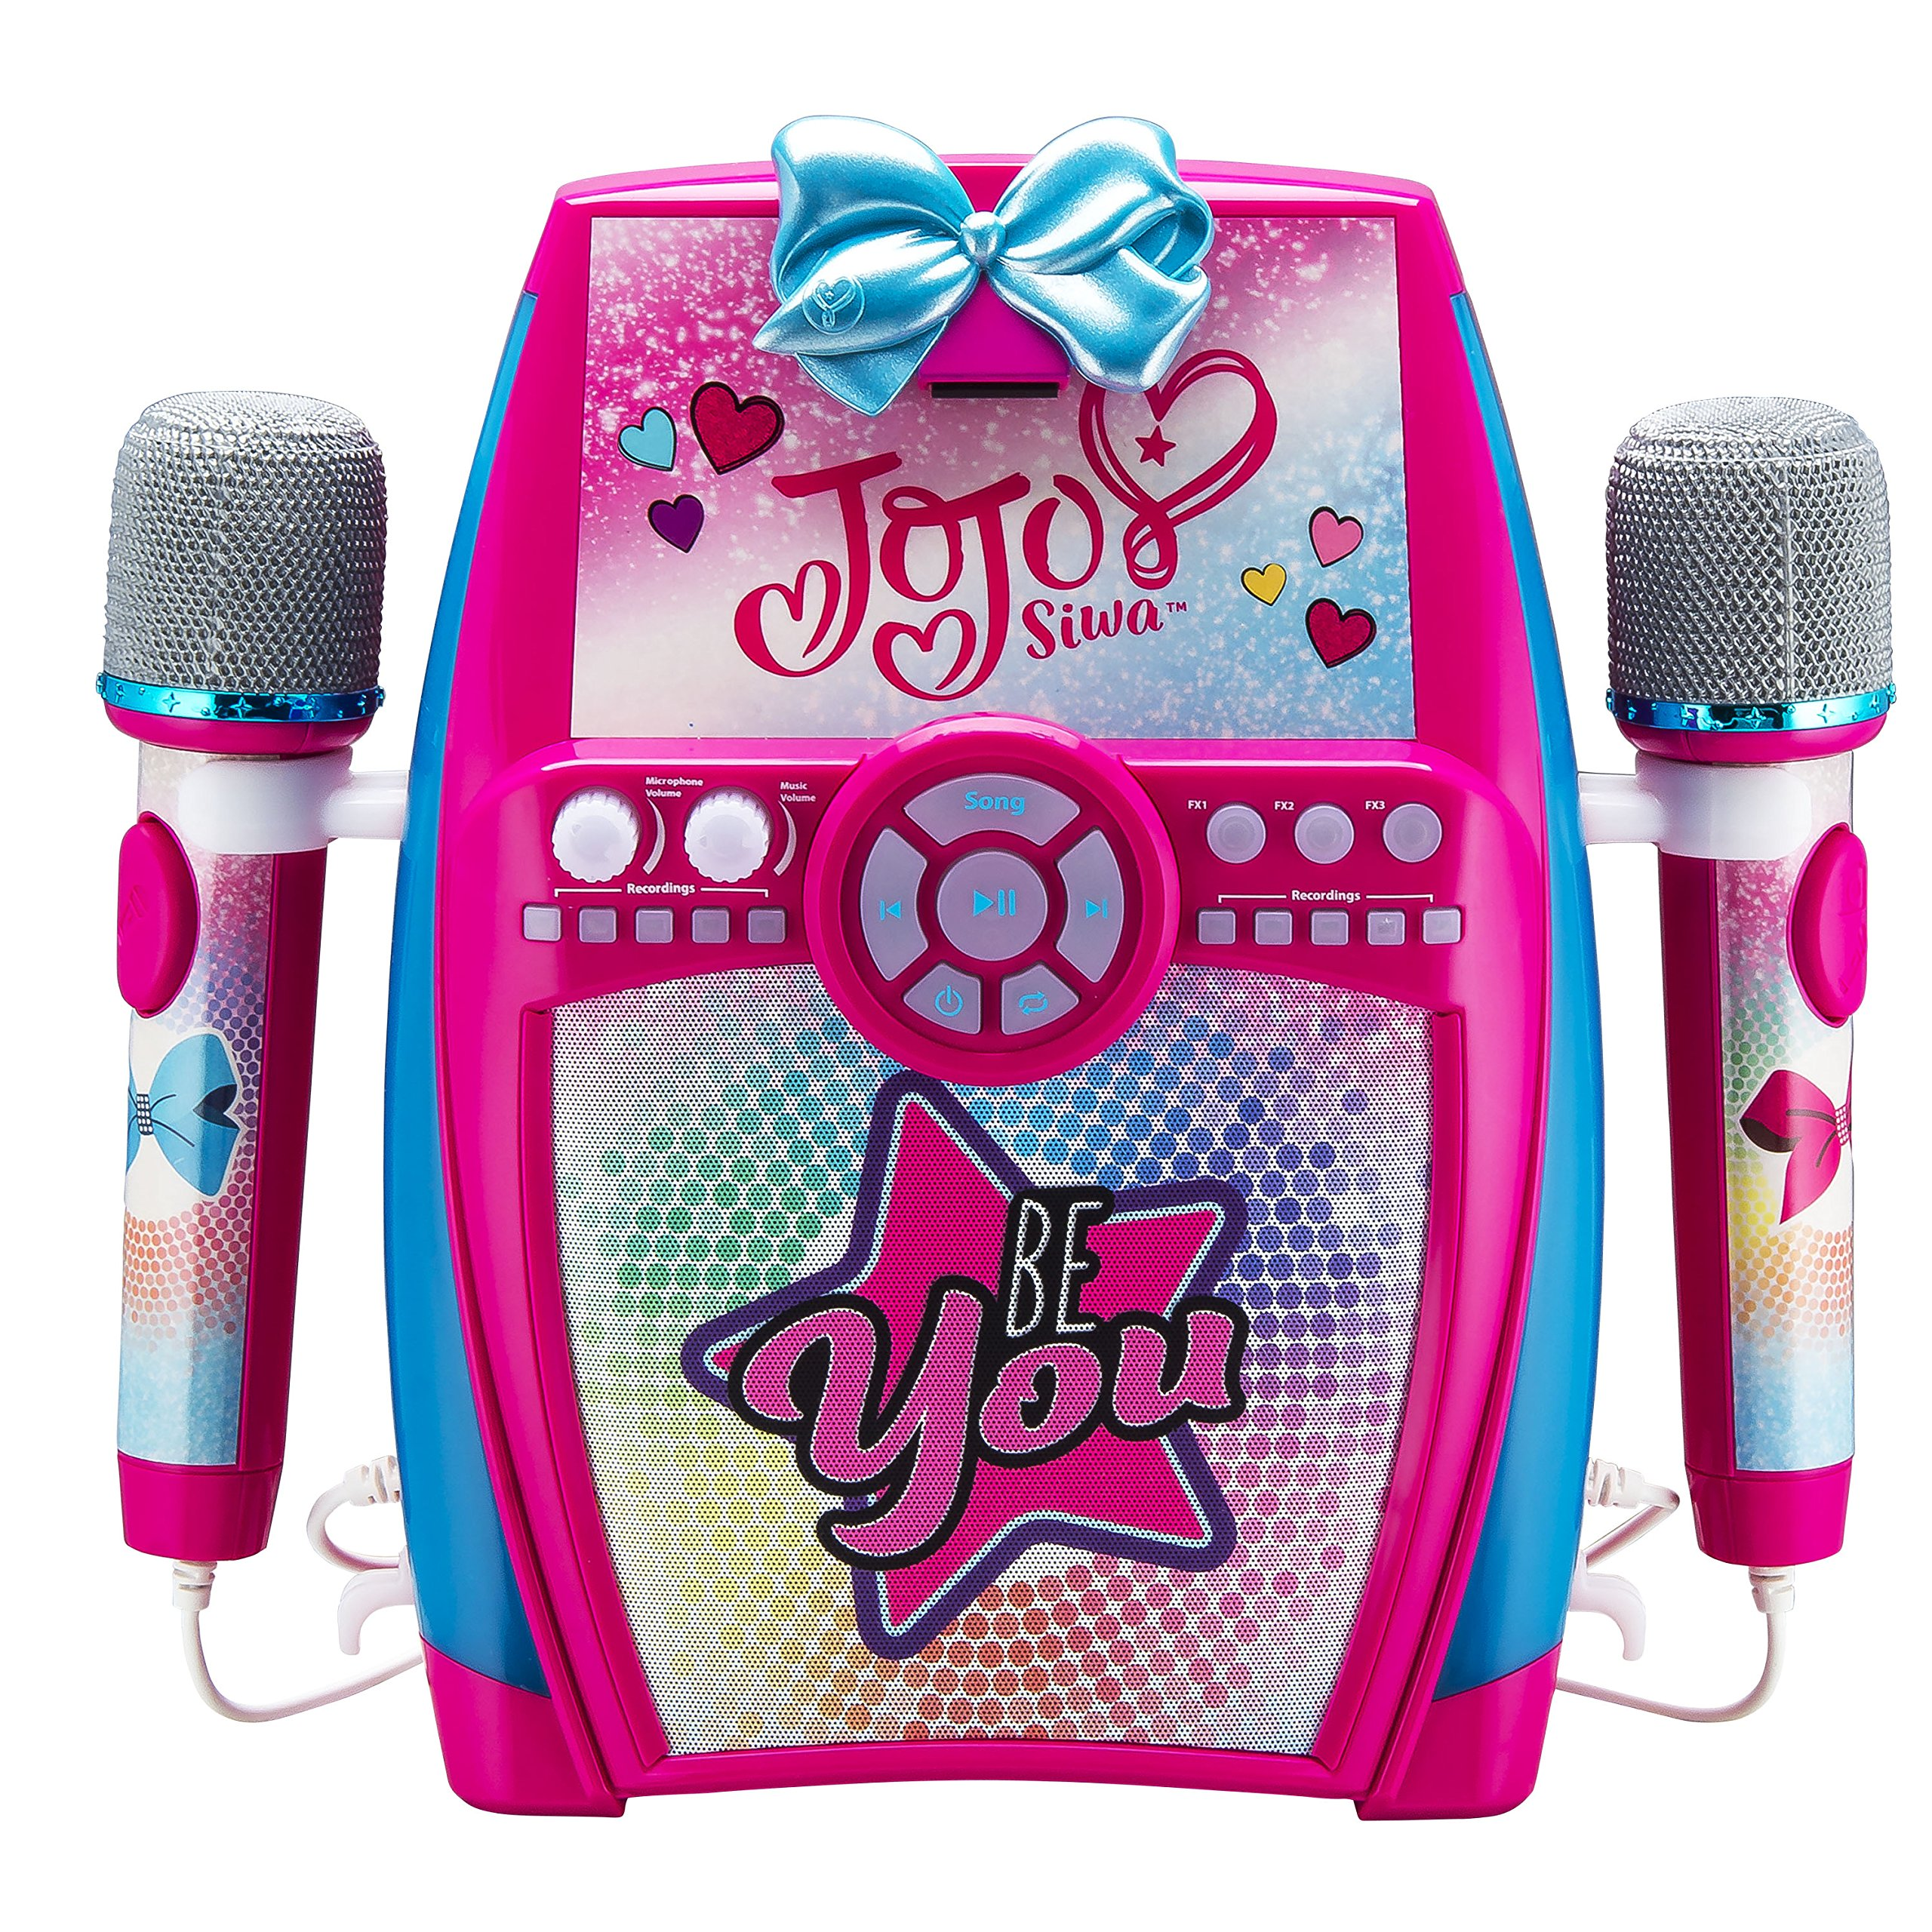 Jojo Siwa Bow Digital Recording Studio - Record, Sing, and Create by eKids